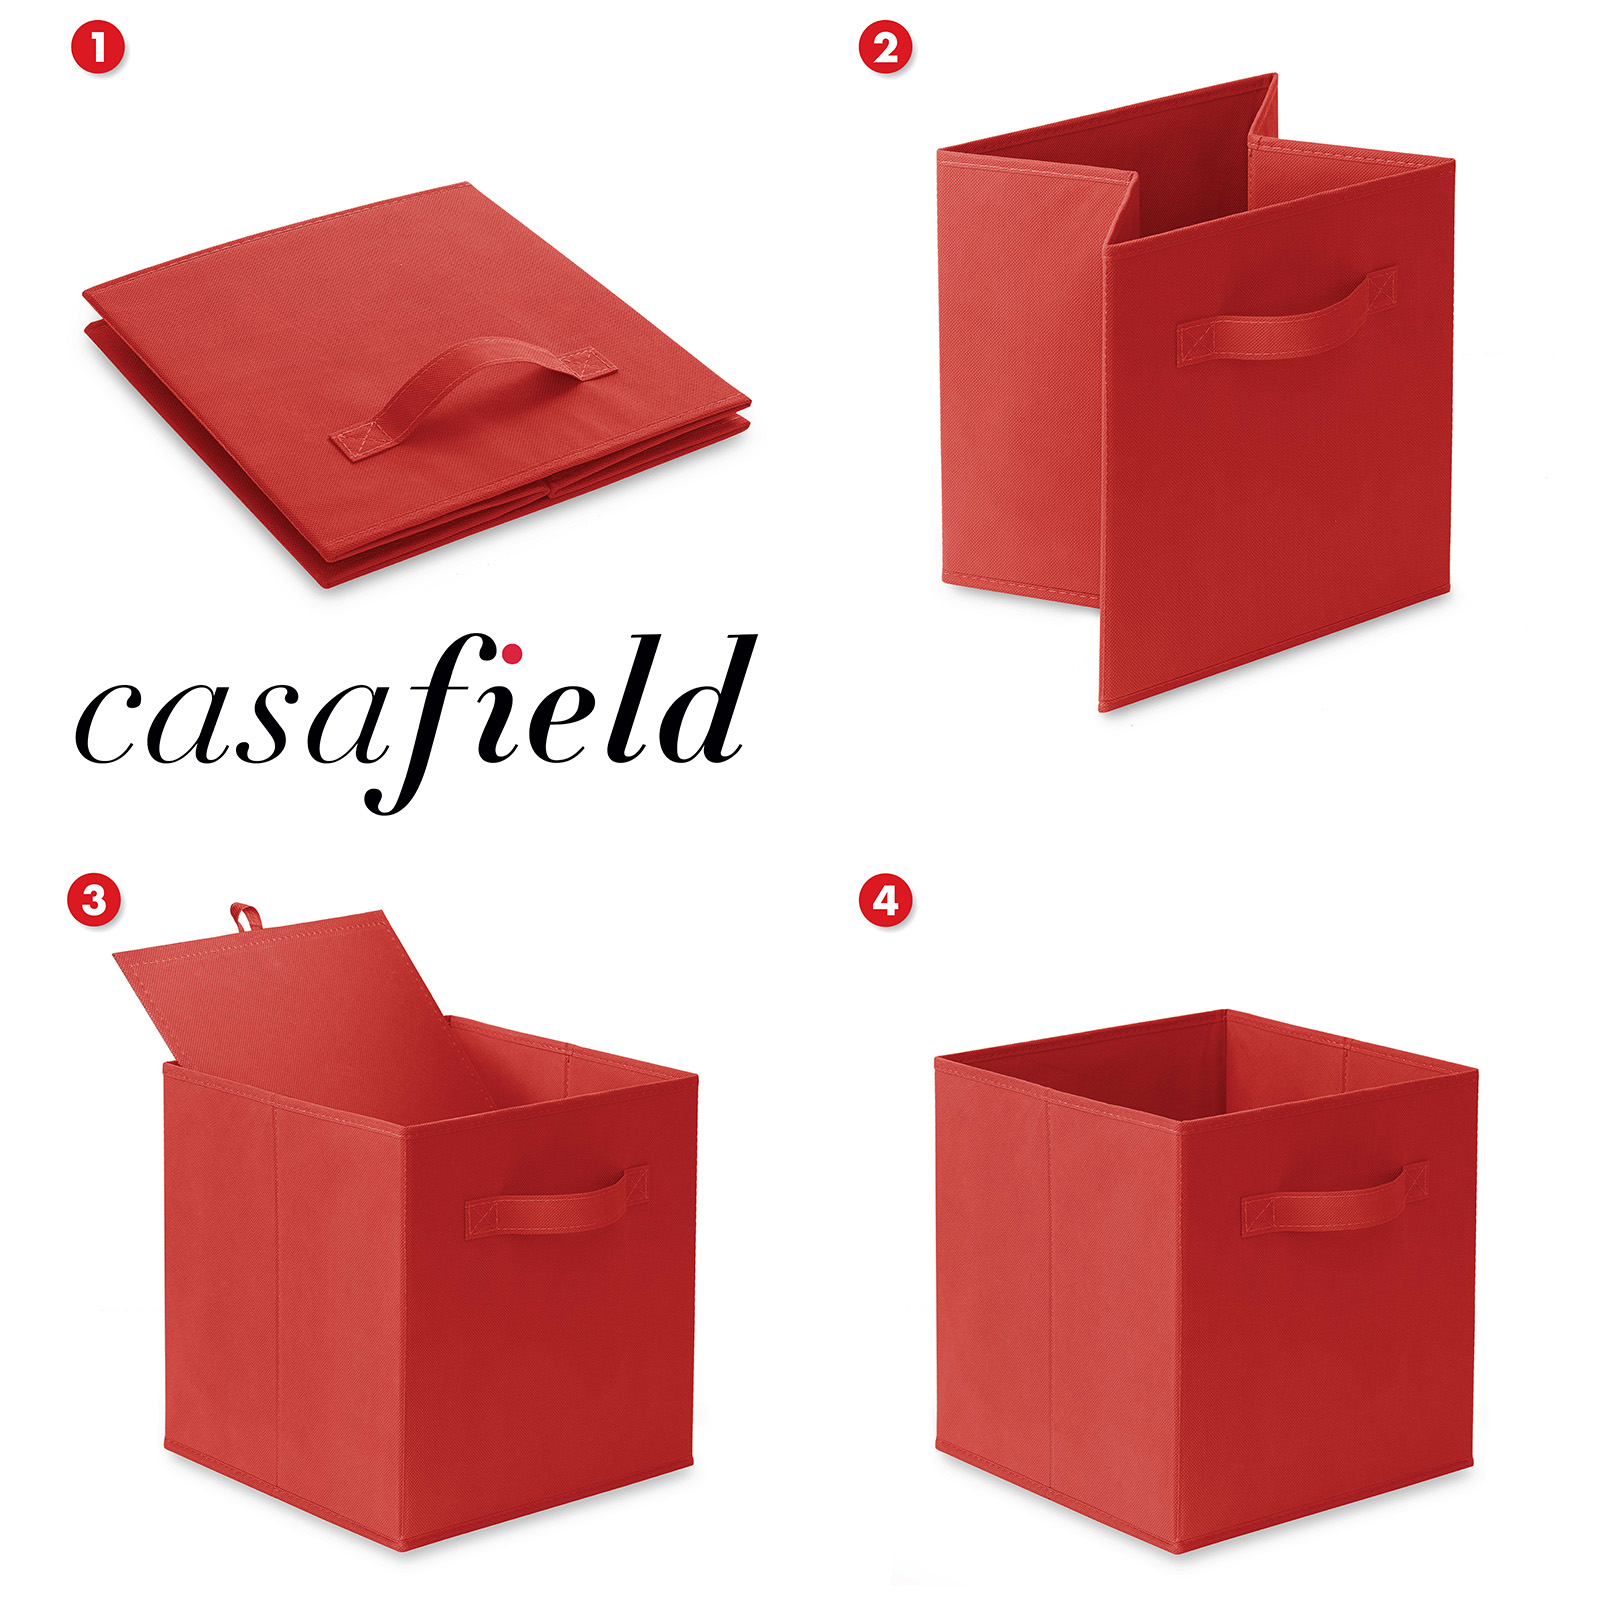 6-Collapsible-Foldable-Cloth-Fabric-Cubby-Cube-Storage-Bins-Baskets-for-Shelves thumbnail 67